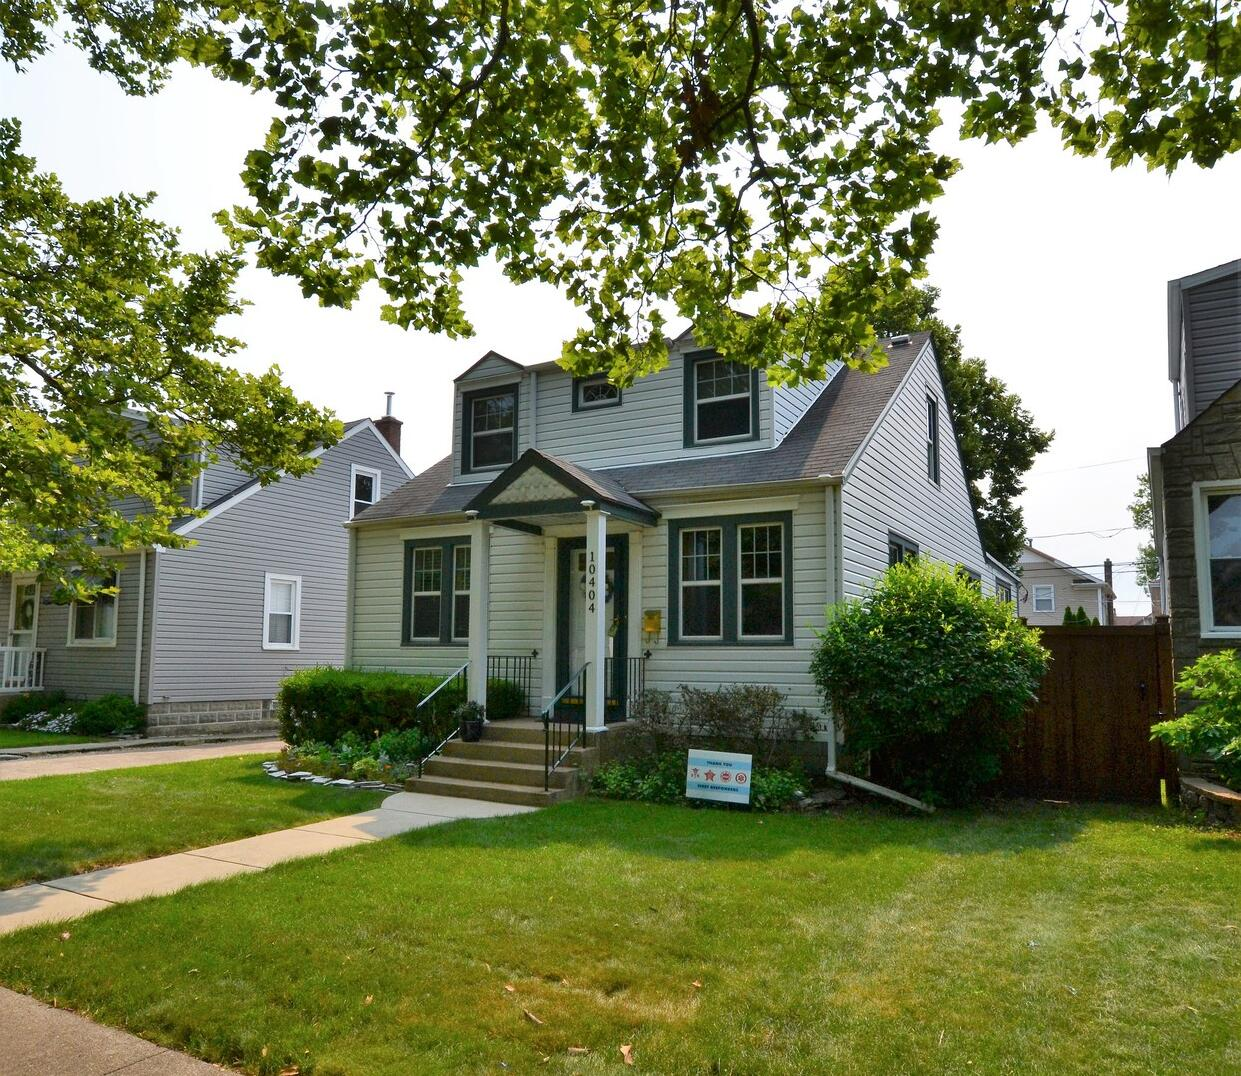 Photo of 10404 Spaulding Chicago IL 60655